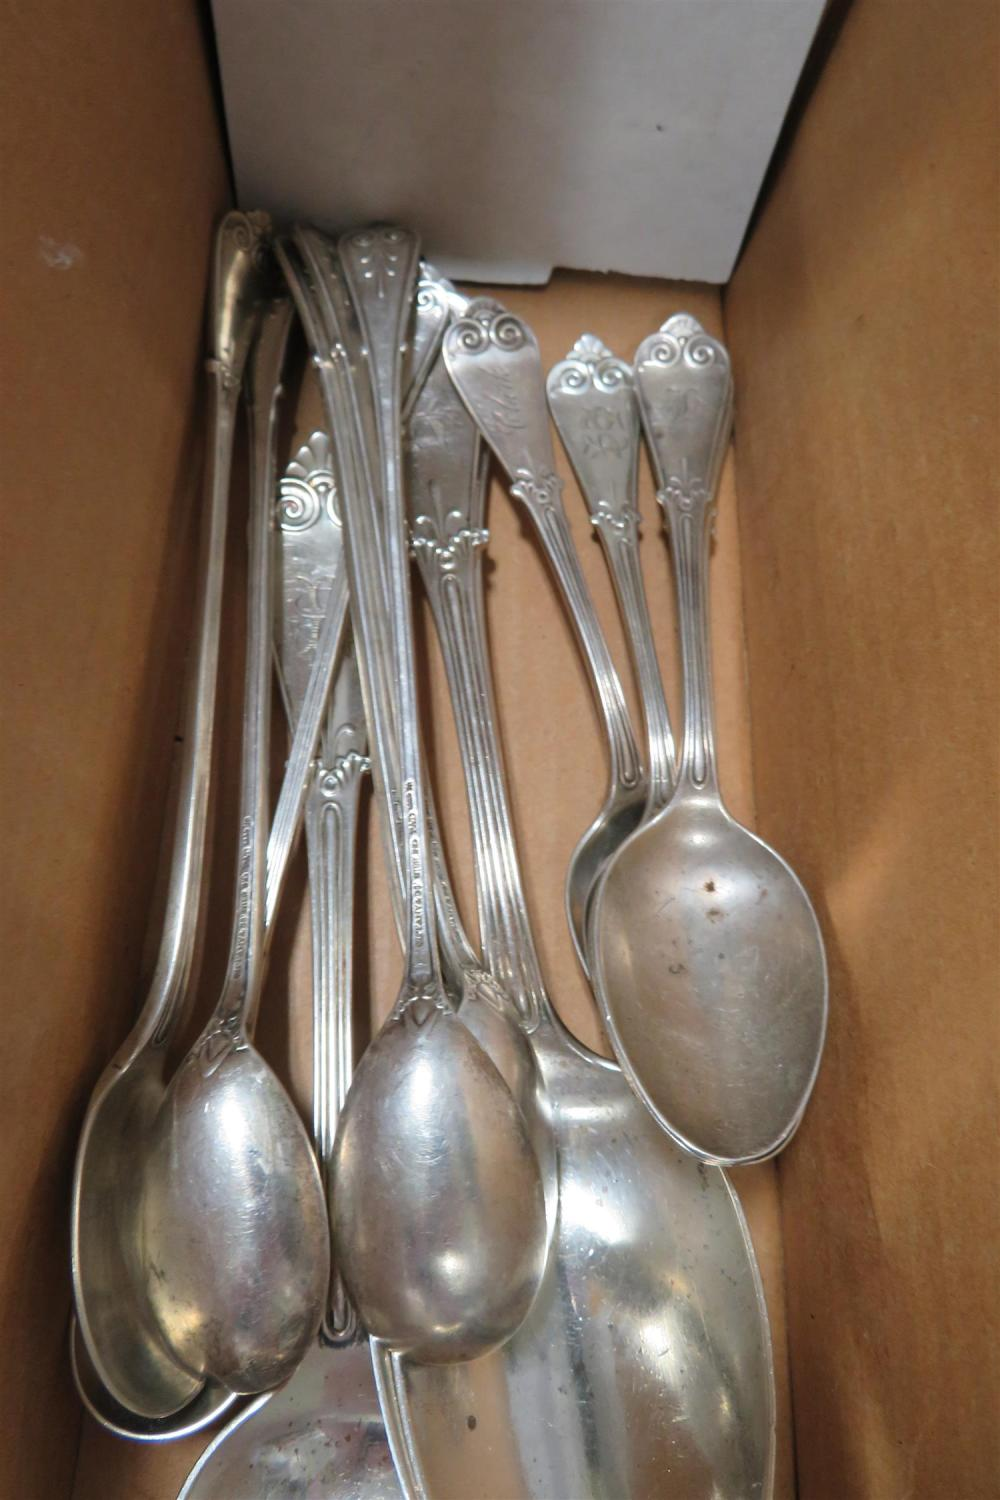 Tiffany & Co silver flatware (16pcs)